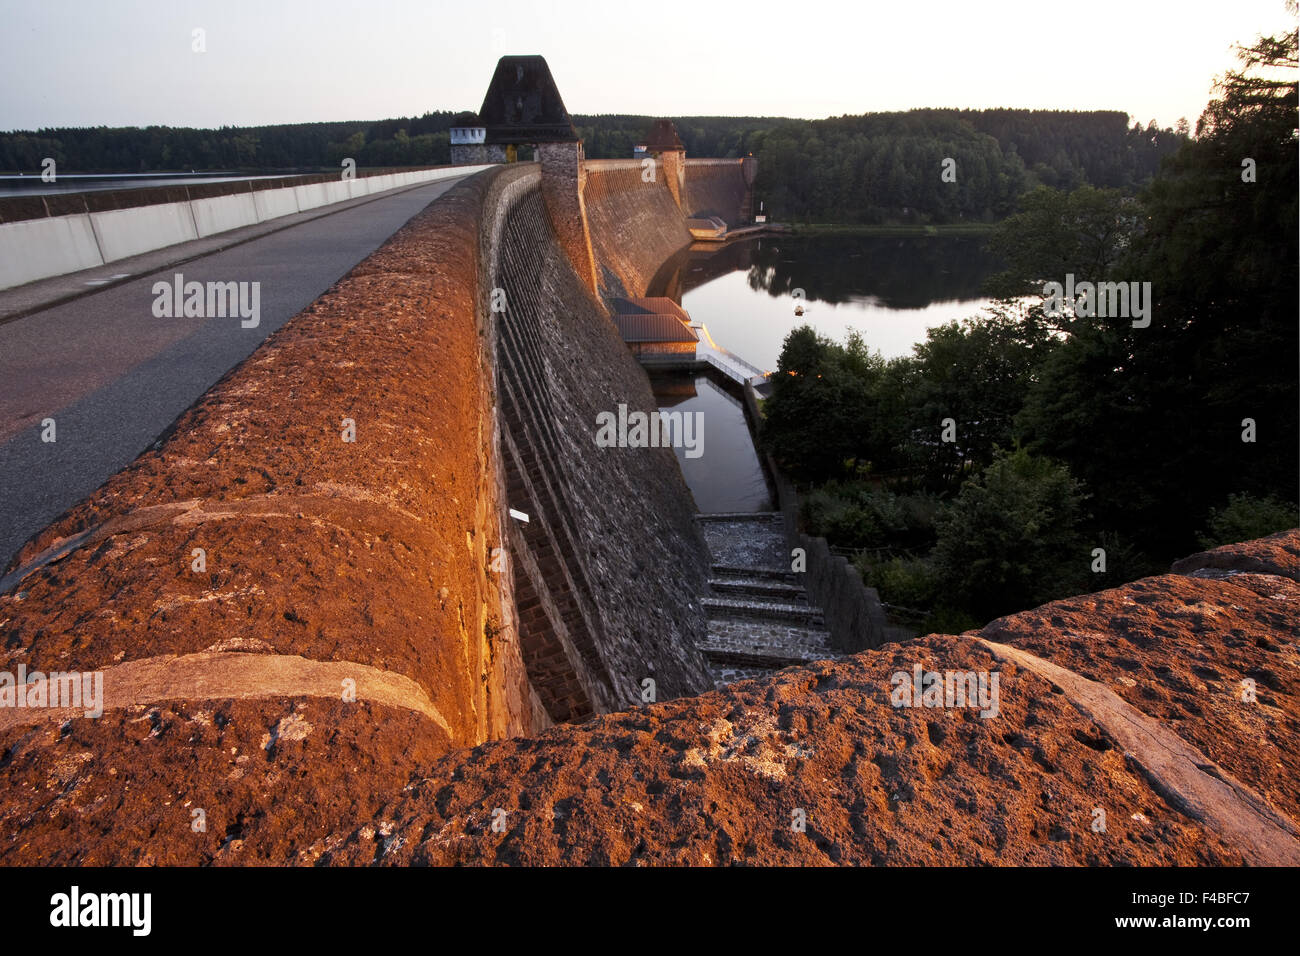 The reservoir Moehnesee with the dam. - Stock Image